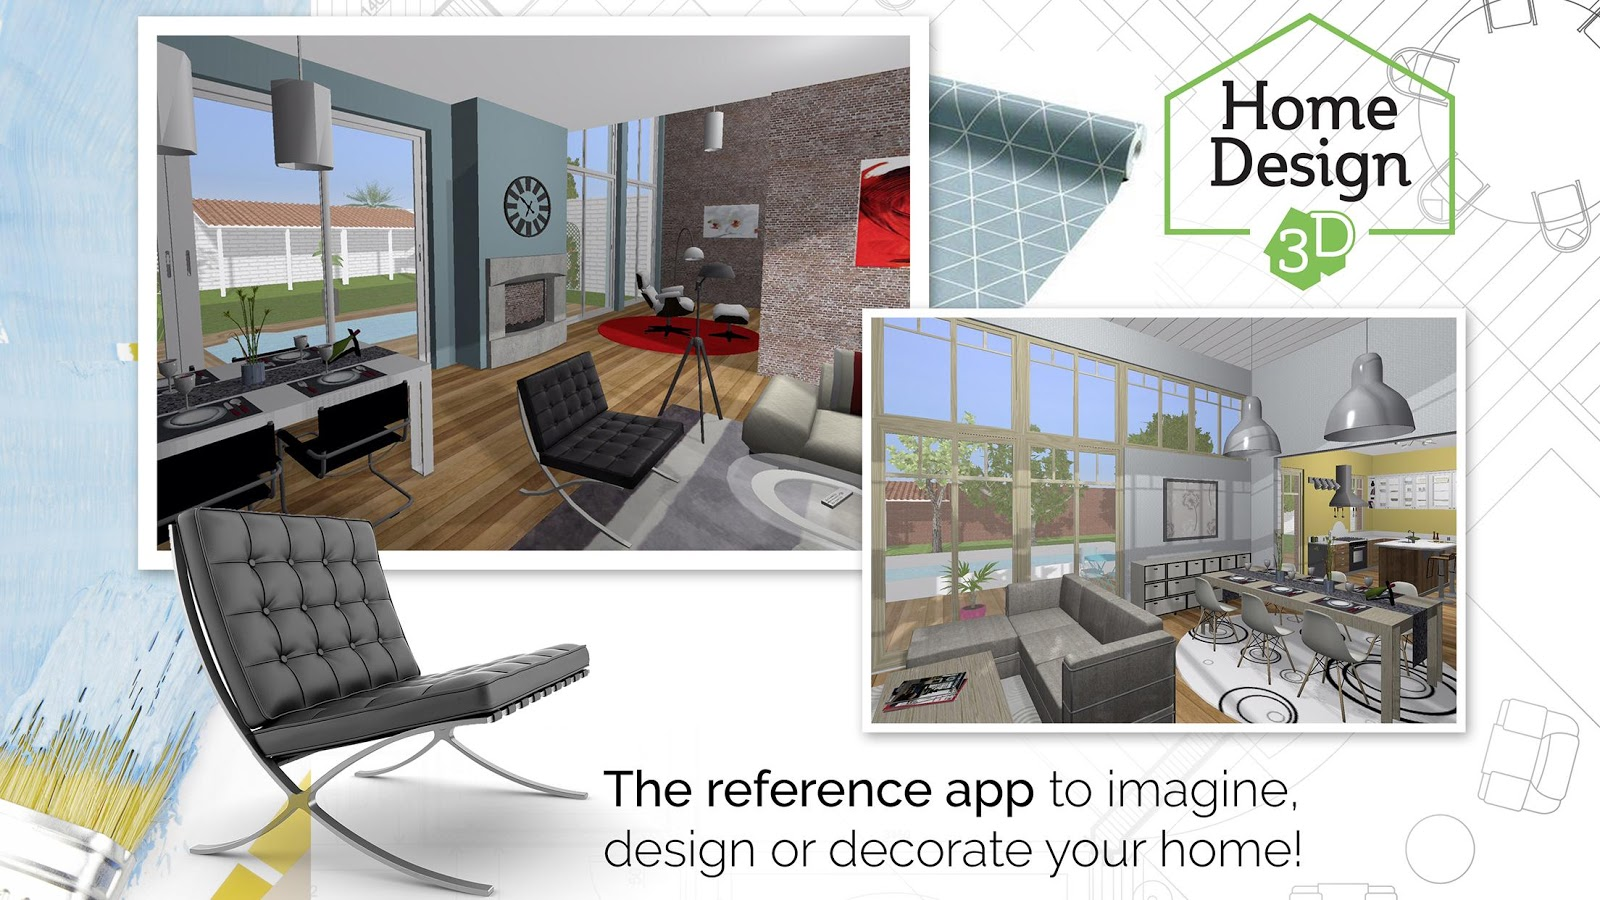 Home design 3d freemium android apps on google play 3d home design